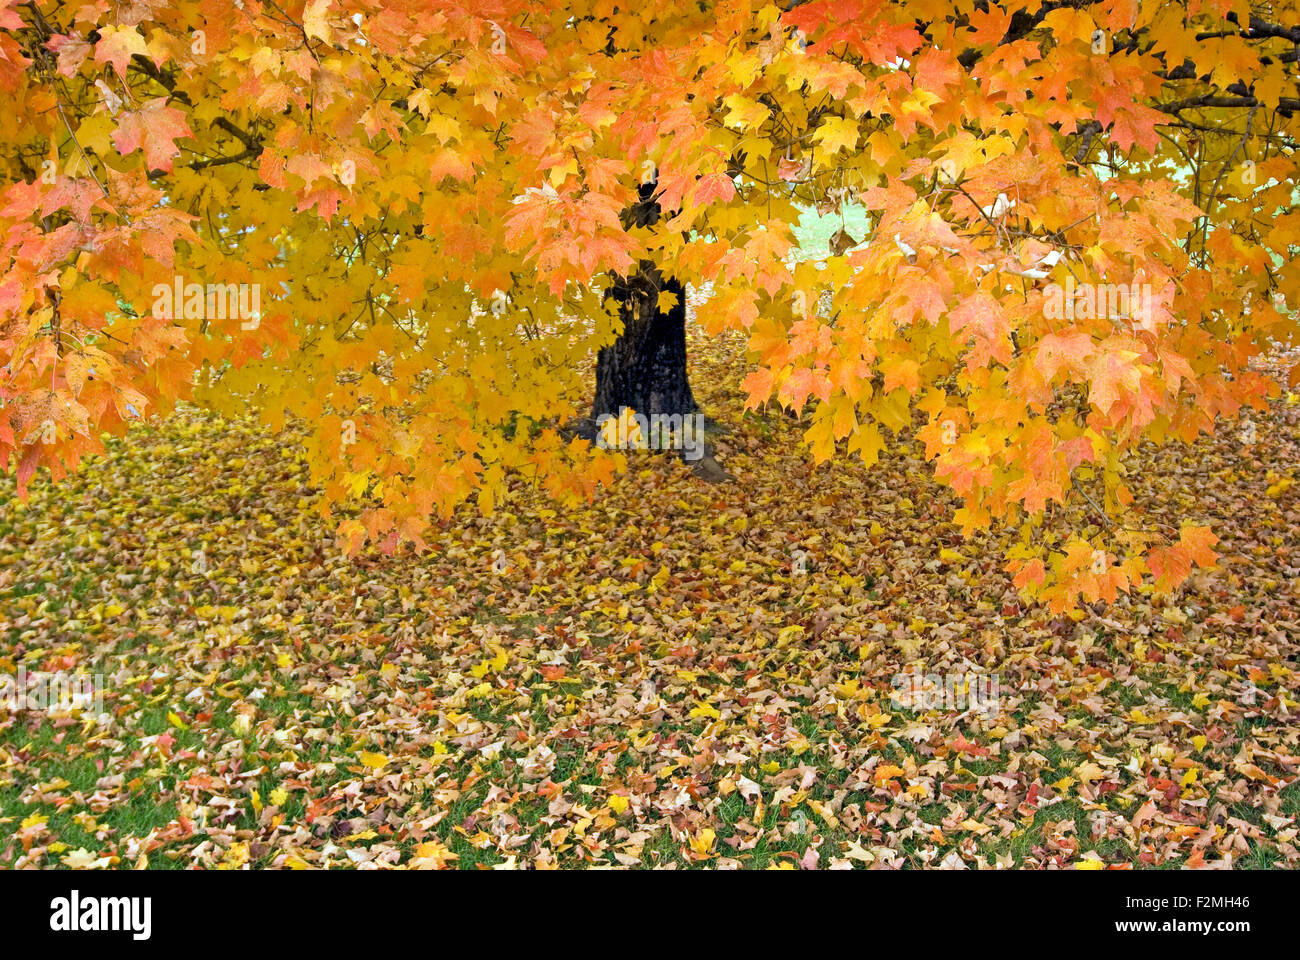 Beautiful Autumn Maple Tree in Horizontal Format - Stock Image